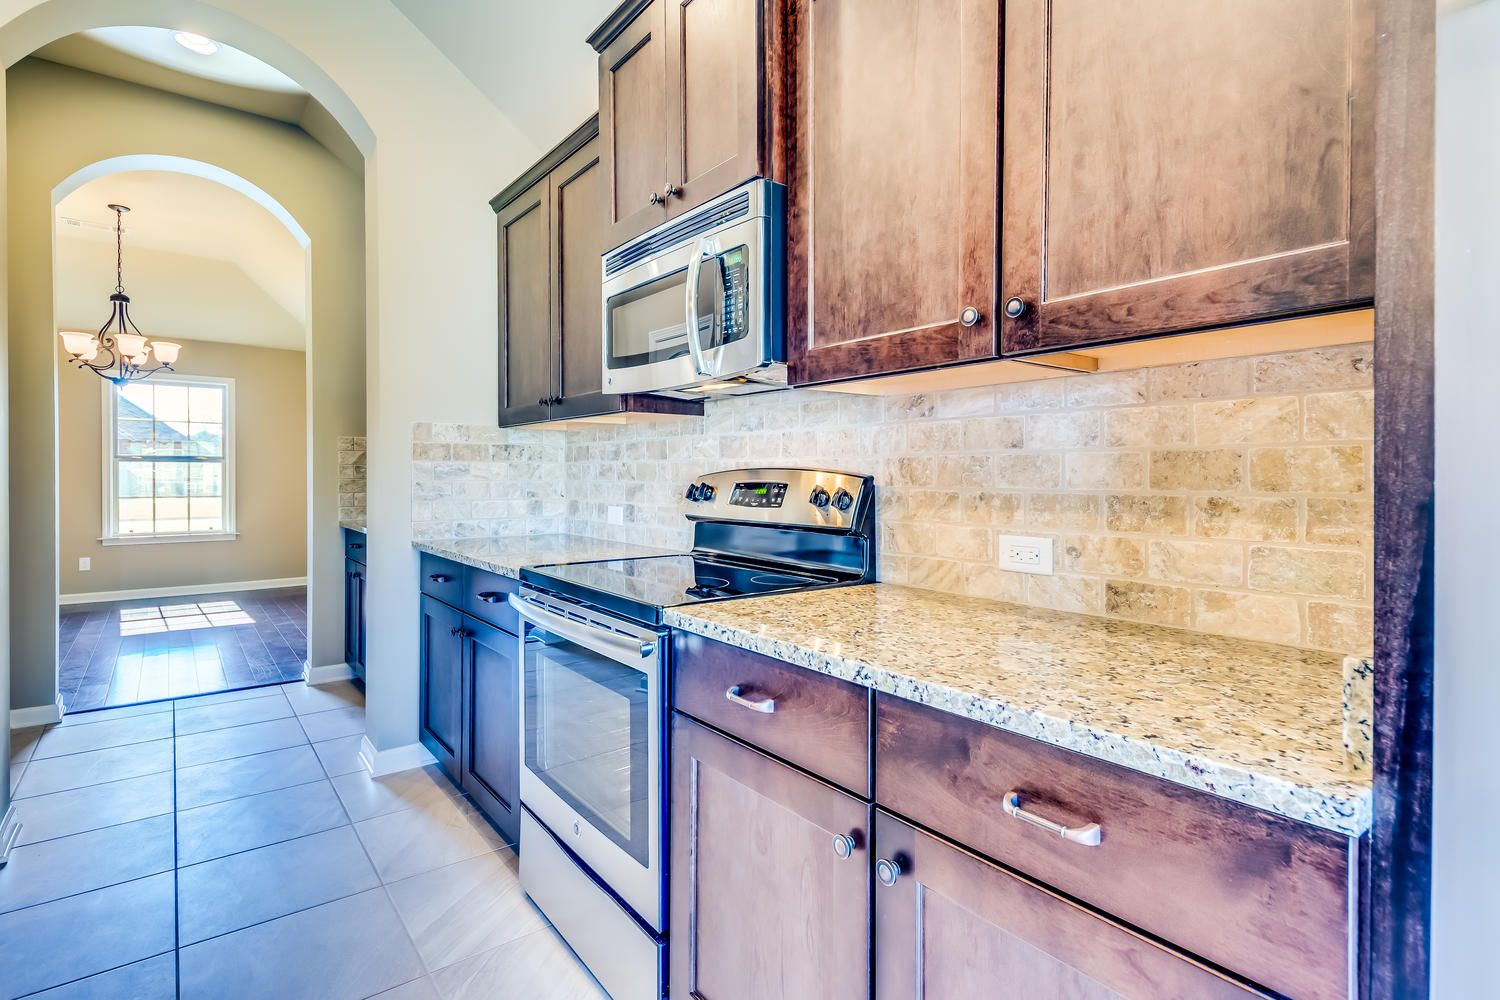 600 Evanwood Drive, Montgomery AL (With images) | New home ...